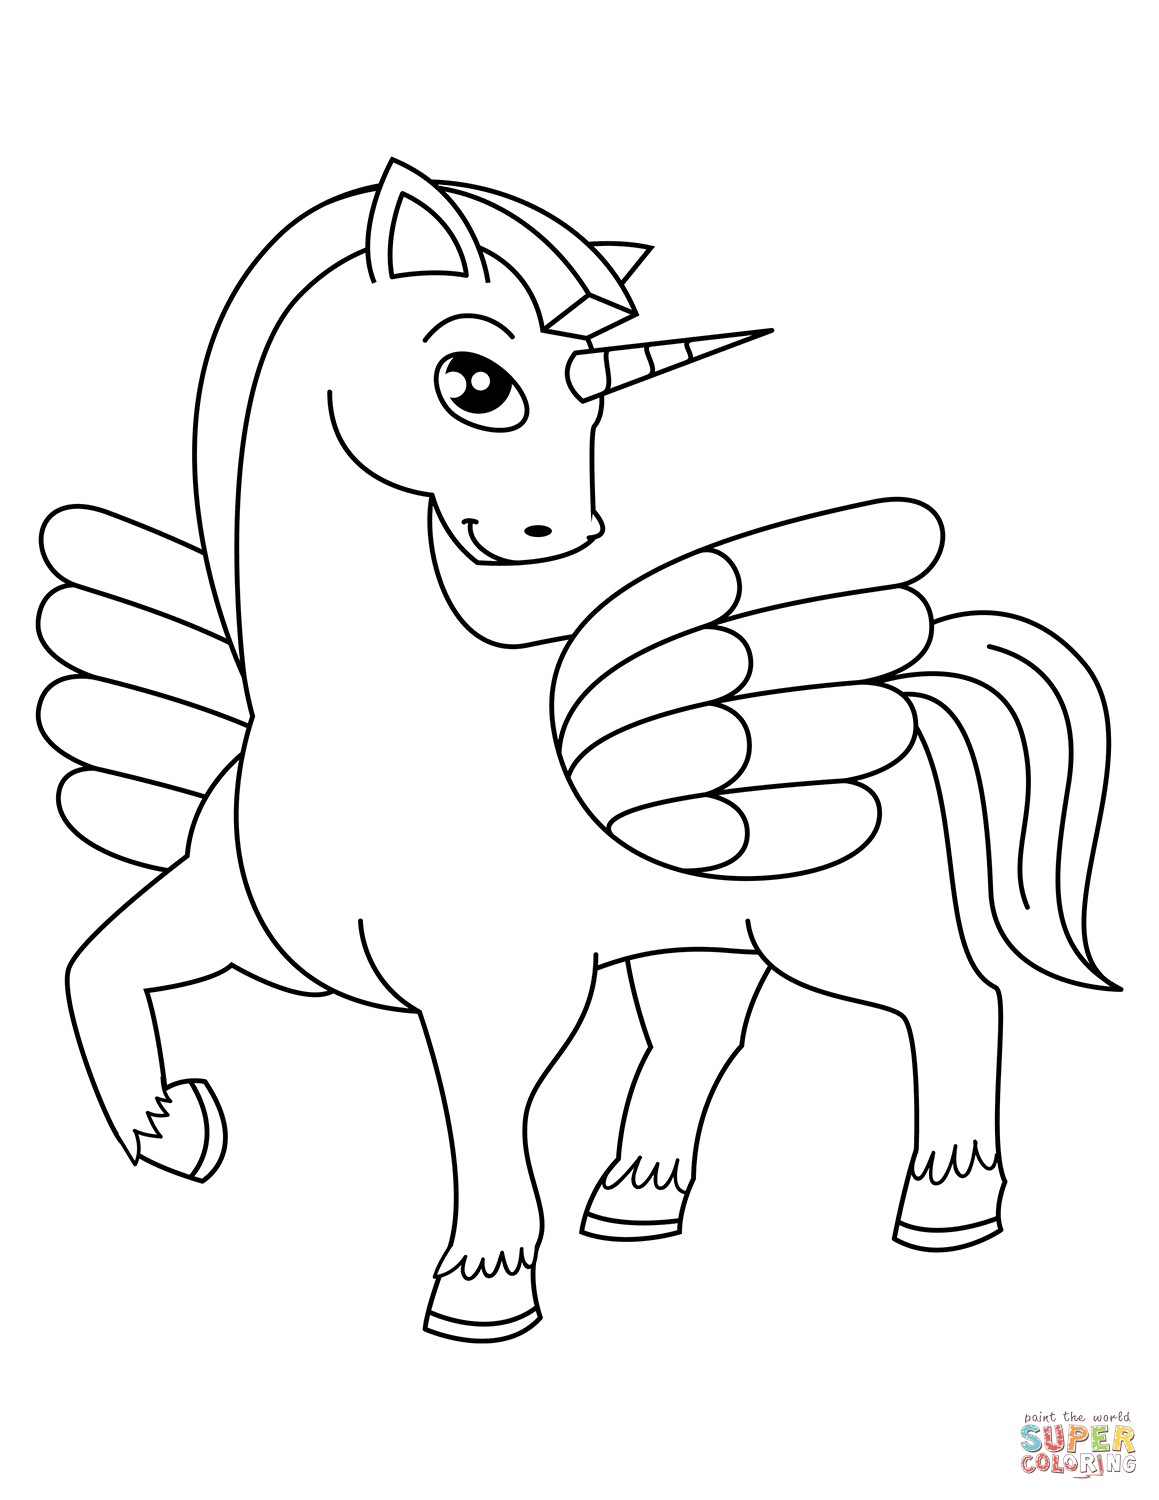 coloring pictures of unicorns unicorn coloring page for kids stock illustration unicorns of pictures coloring